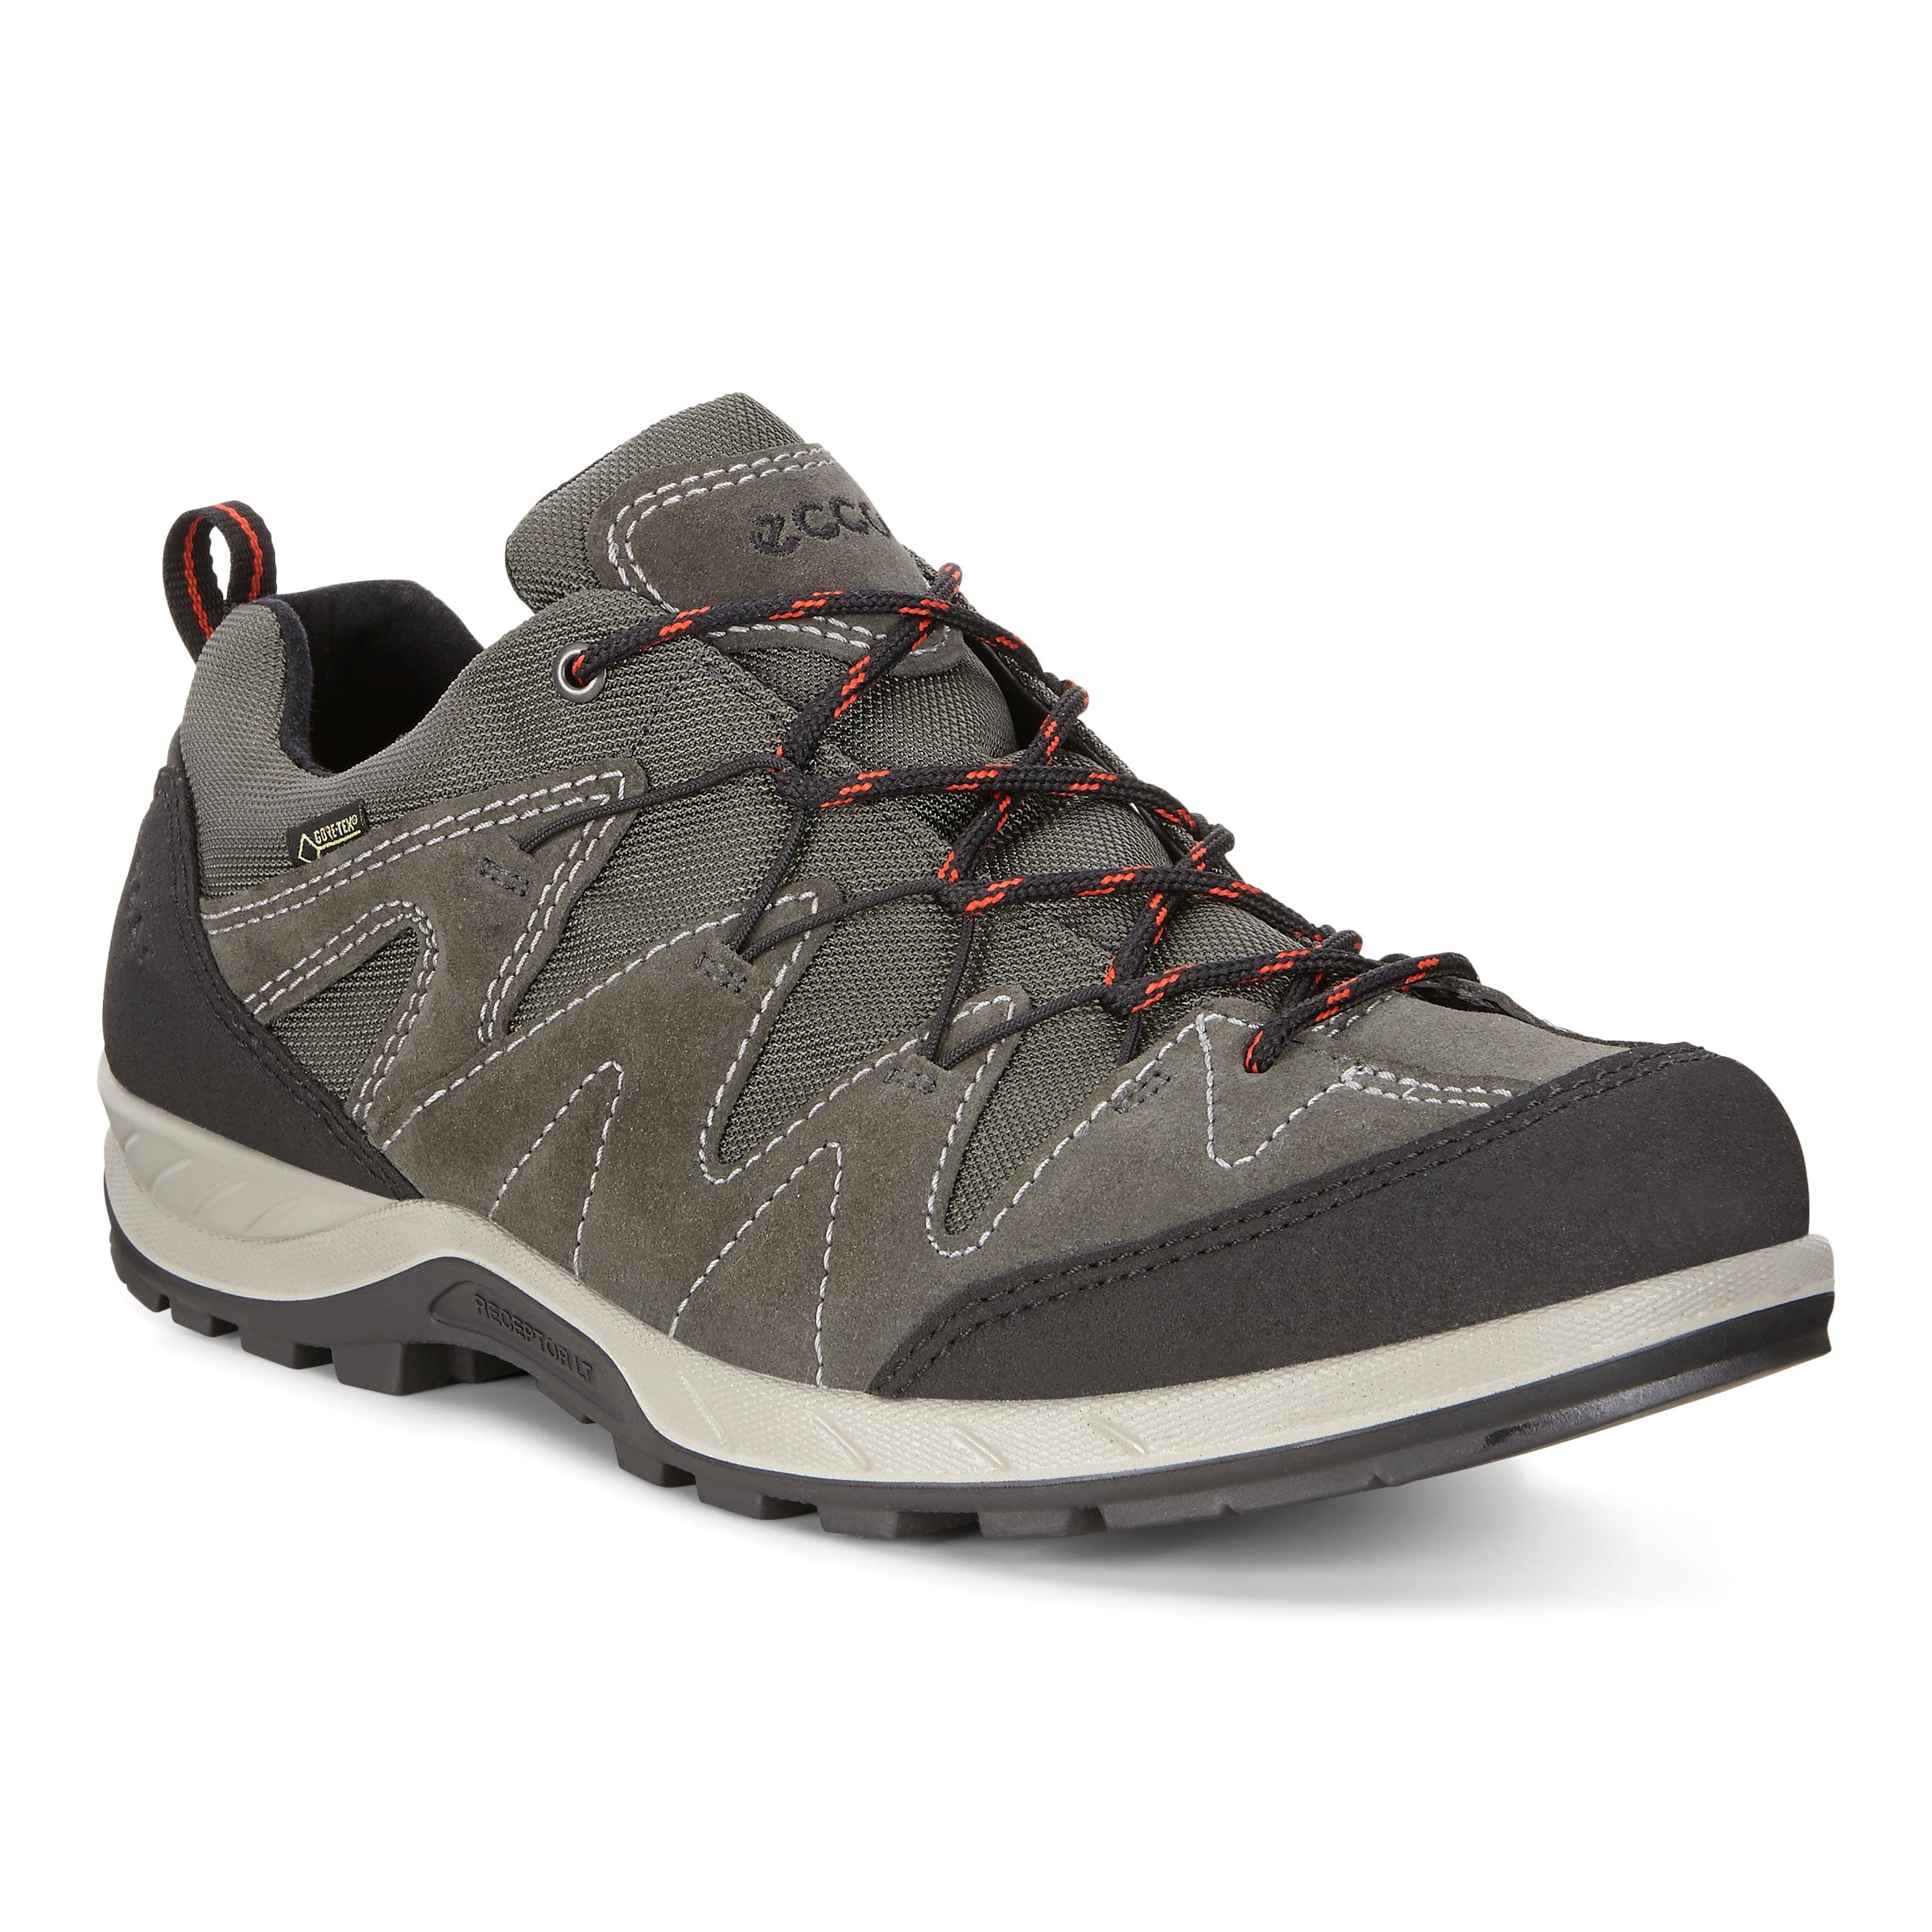 shoes man Ecco 69163